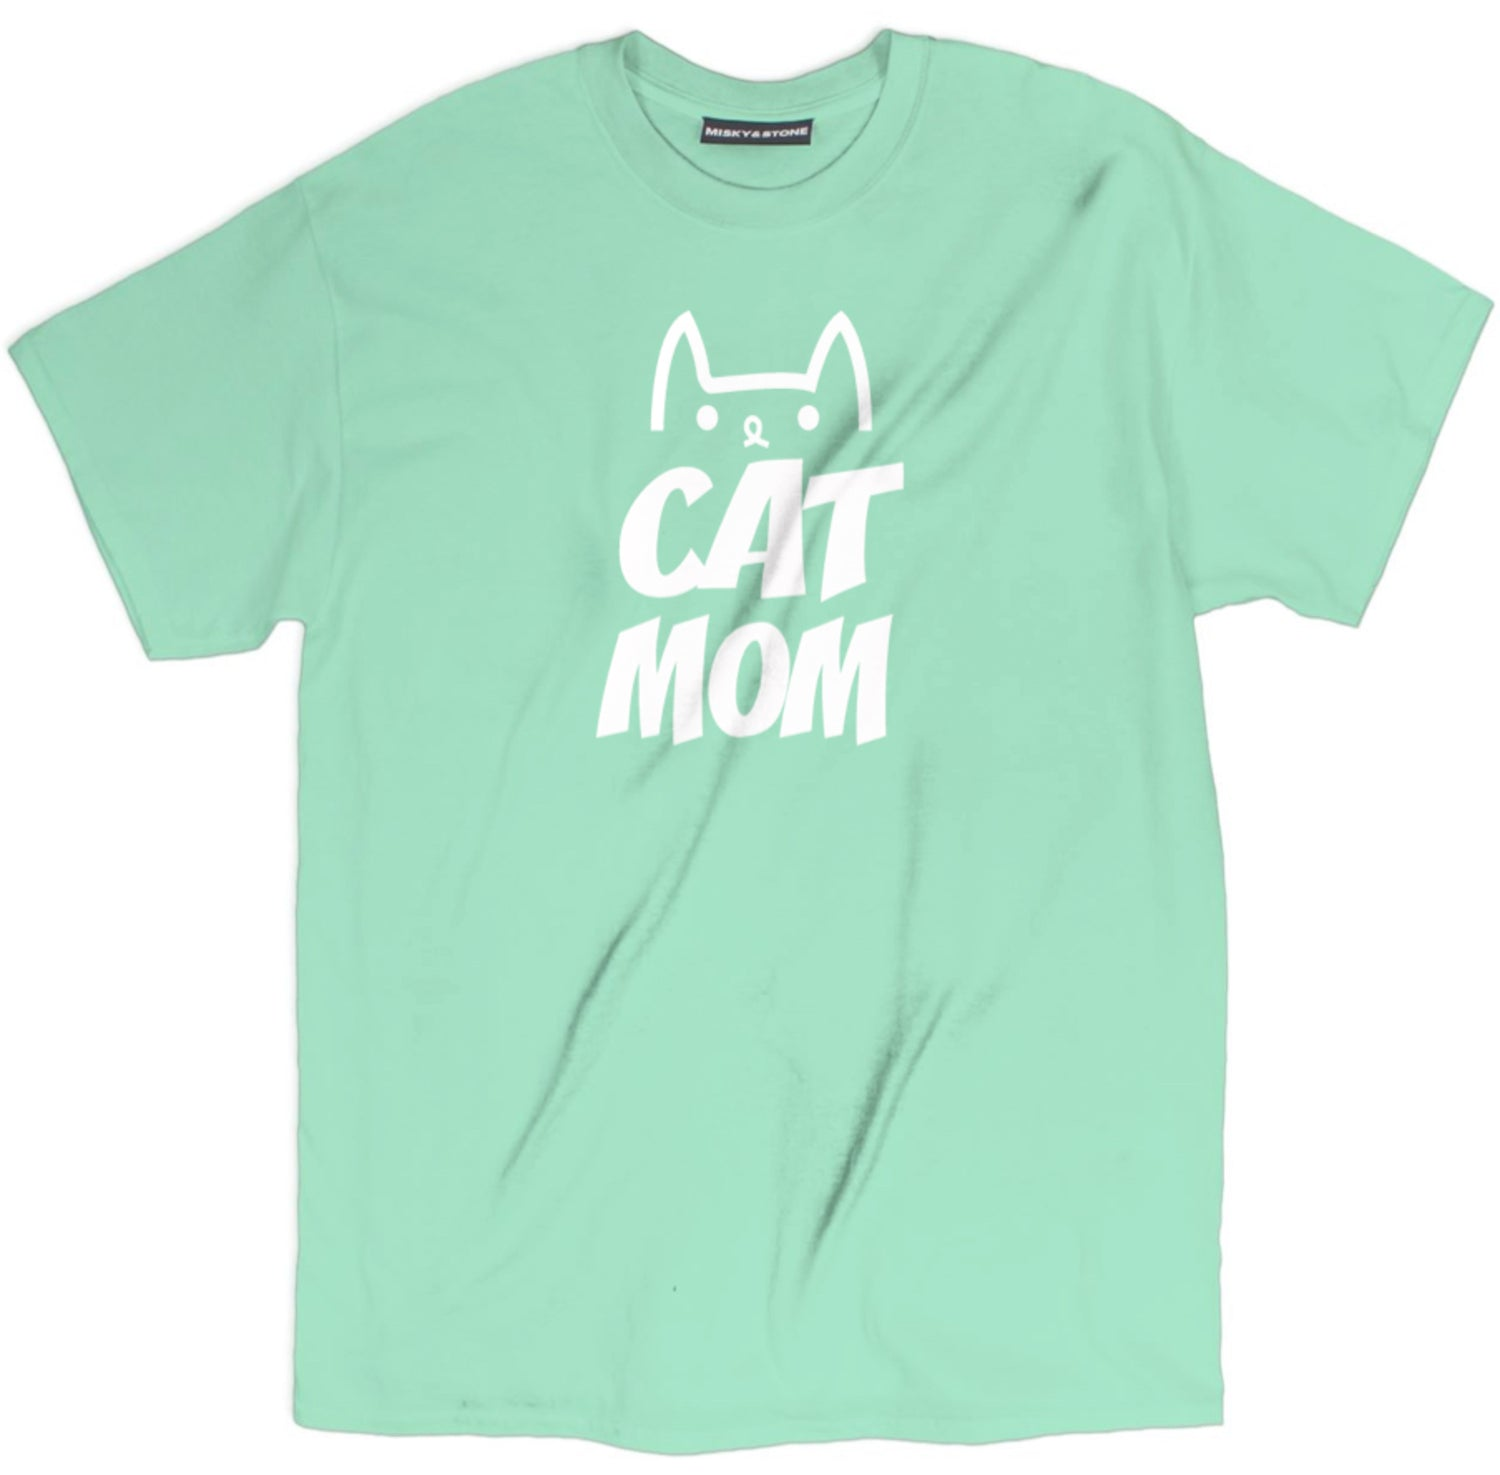 Cat Mom Shirt